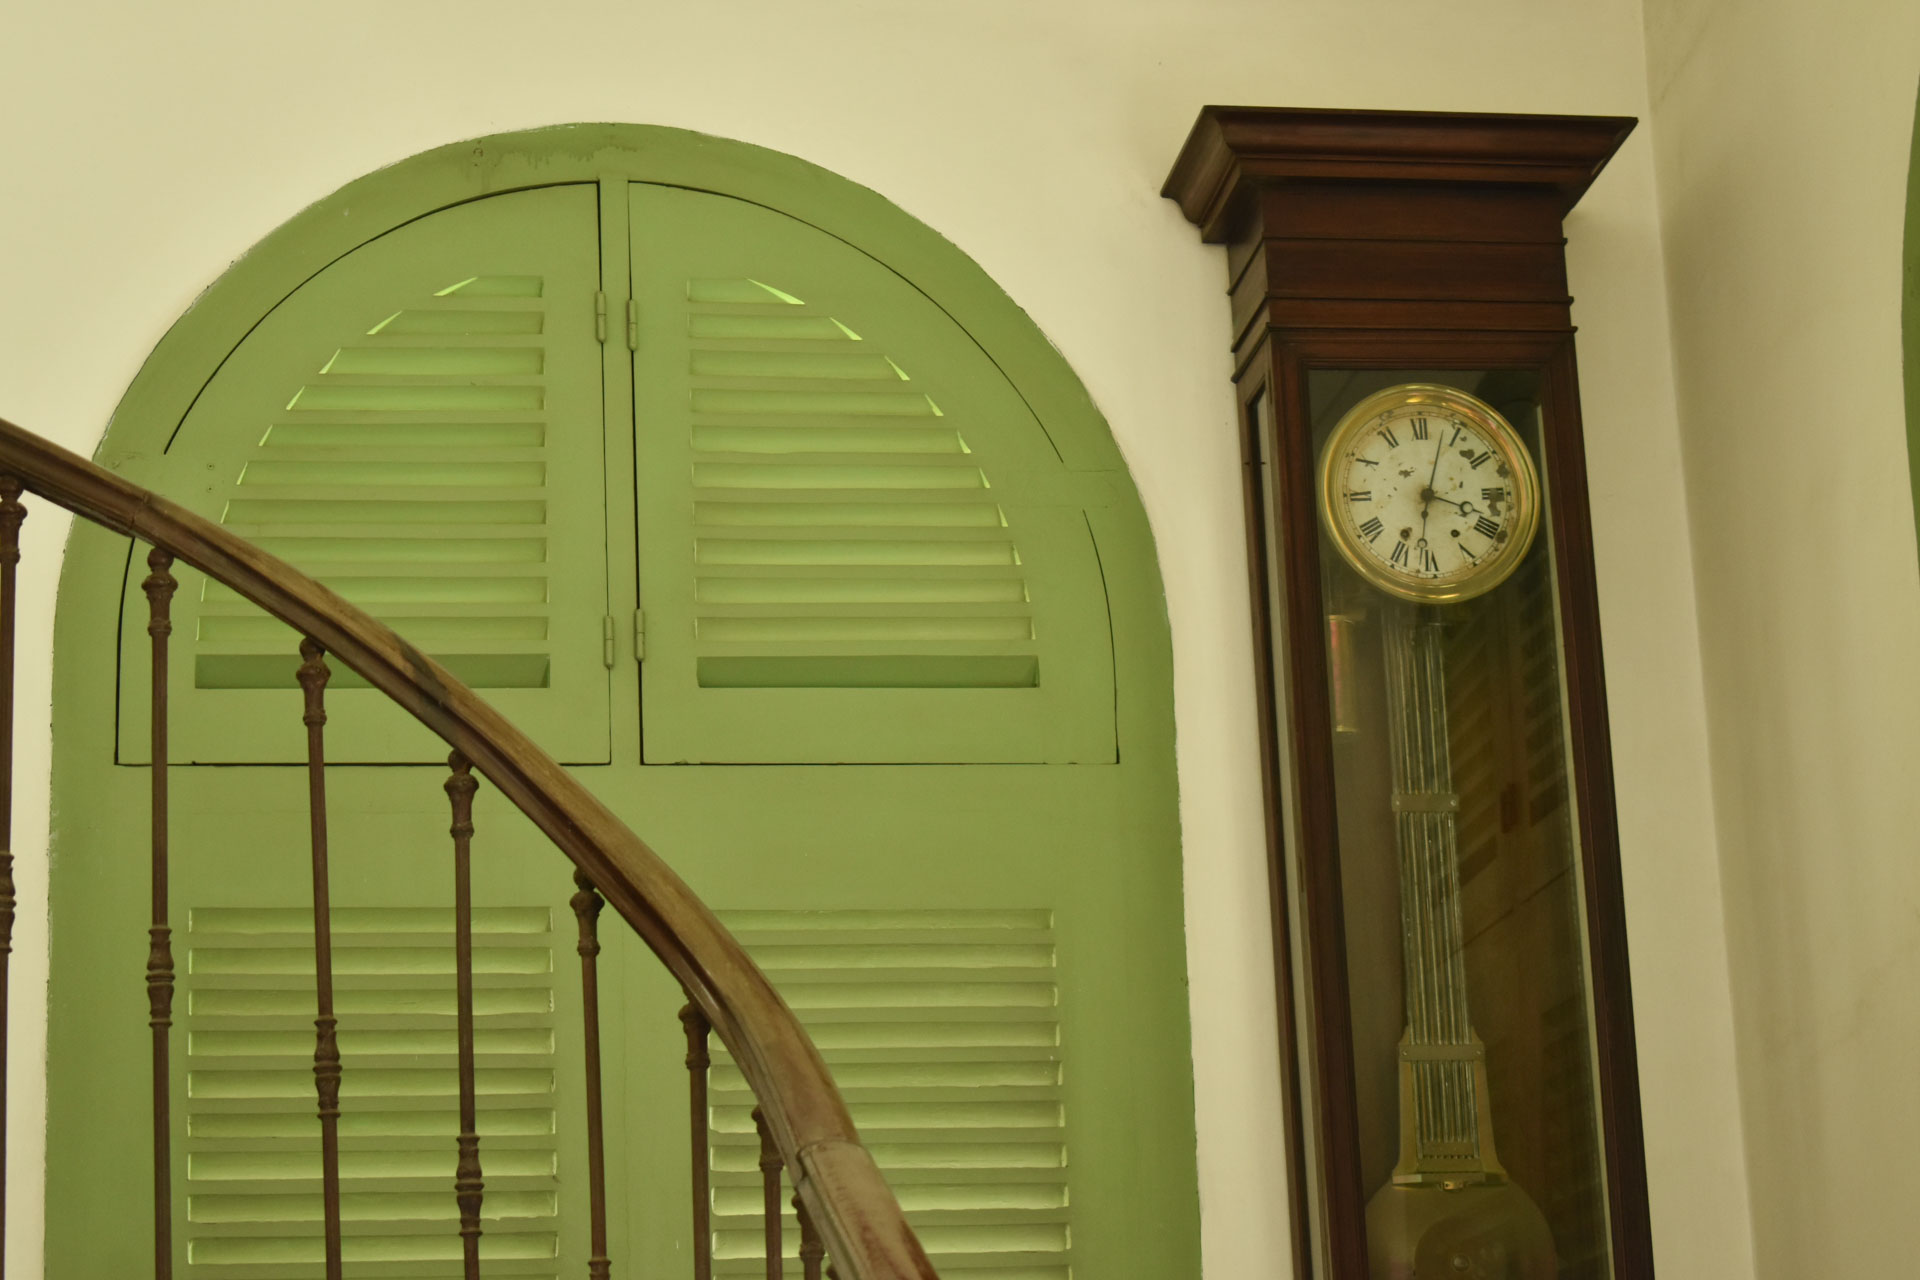 A French-made antique clock inside the Consulate General of France in Ho Chi Minh City. Photo: Tuan Son / Tuoi Tre News